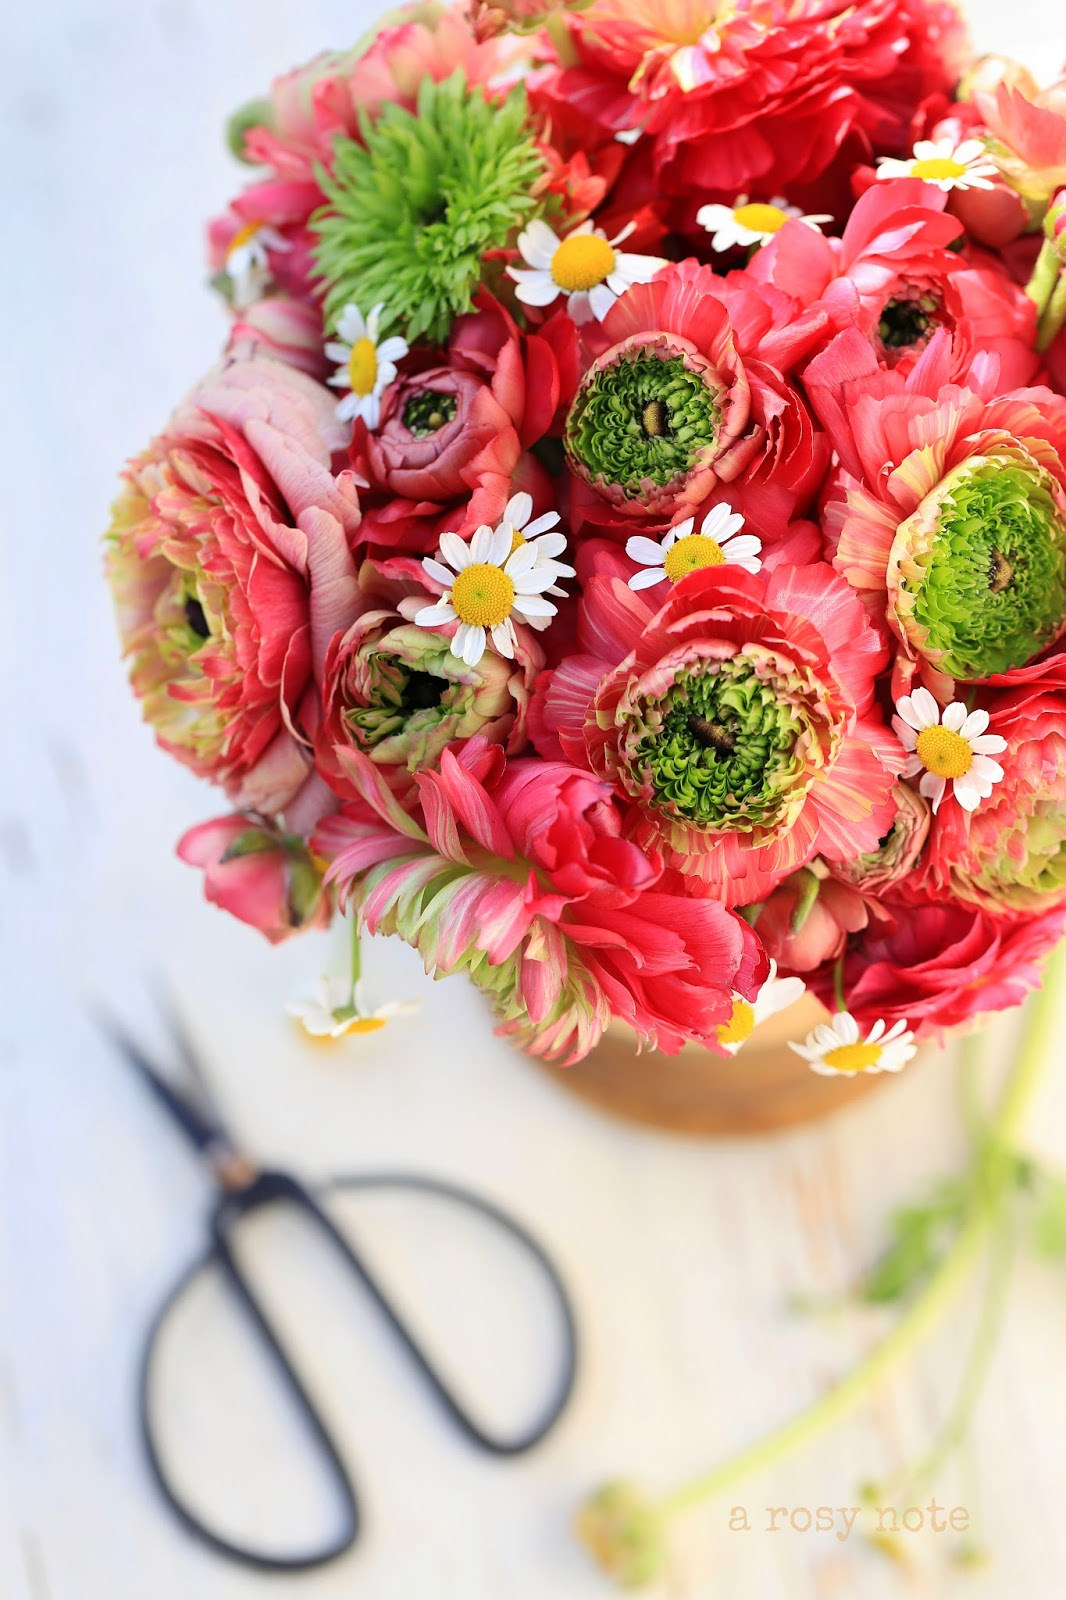 Flowers, Fruit, Fall and Fitness | A Rosy Note